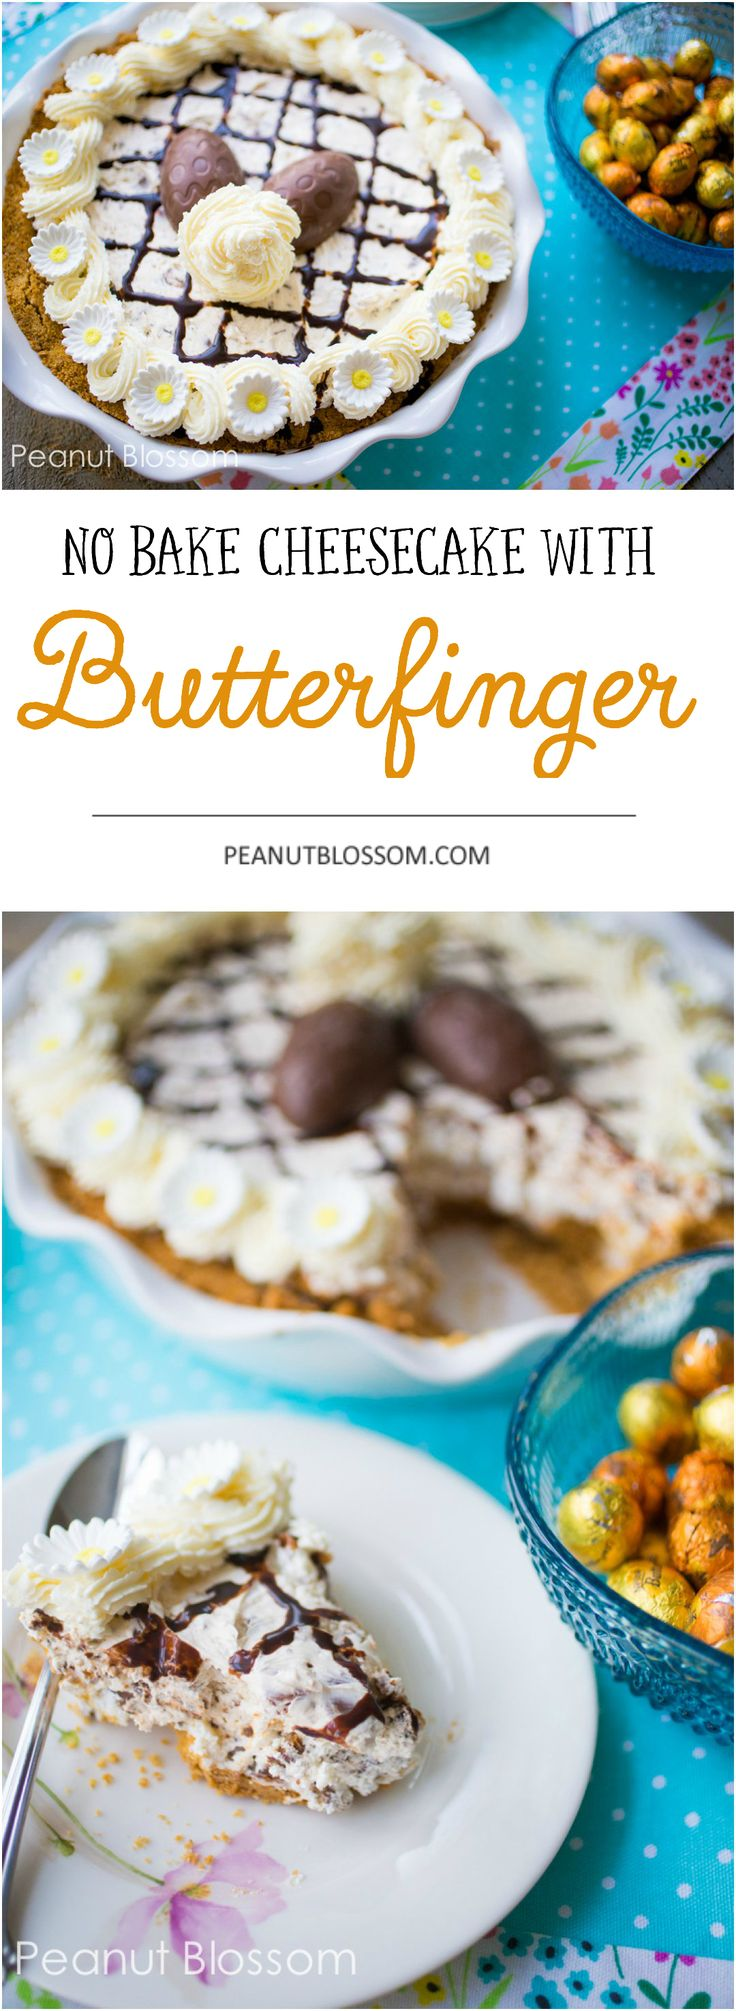 Easy no bake cheesecake with Butterfingers is the perfect Easter dessert recipe! Make it ahead and let it chill in the fridge until you're ready to serve. Creamy and chocolatey with plenty of crunchy candies inside. YUM. #easterdessert #nobakedessert